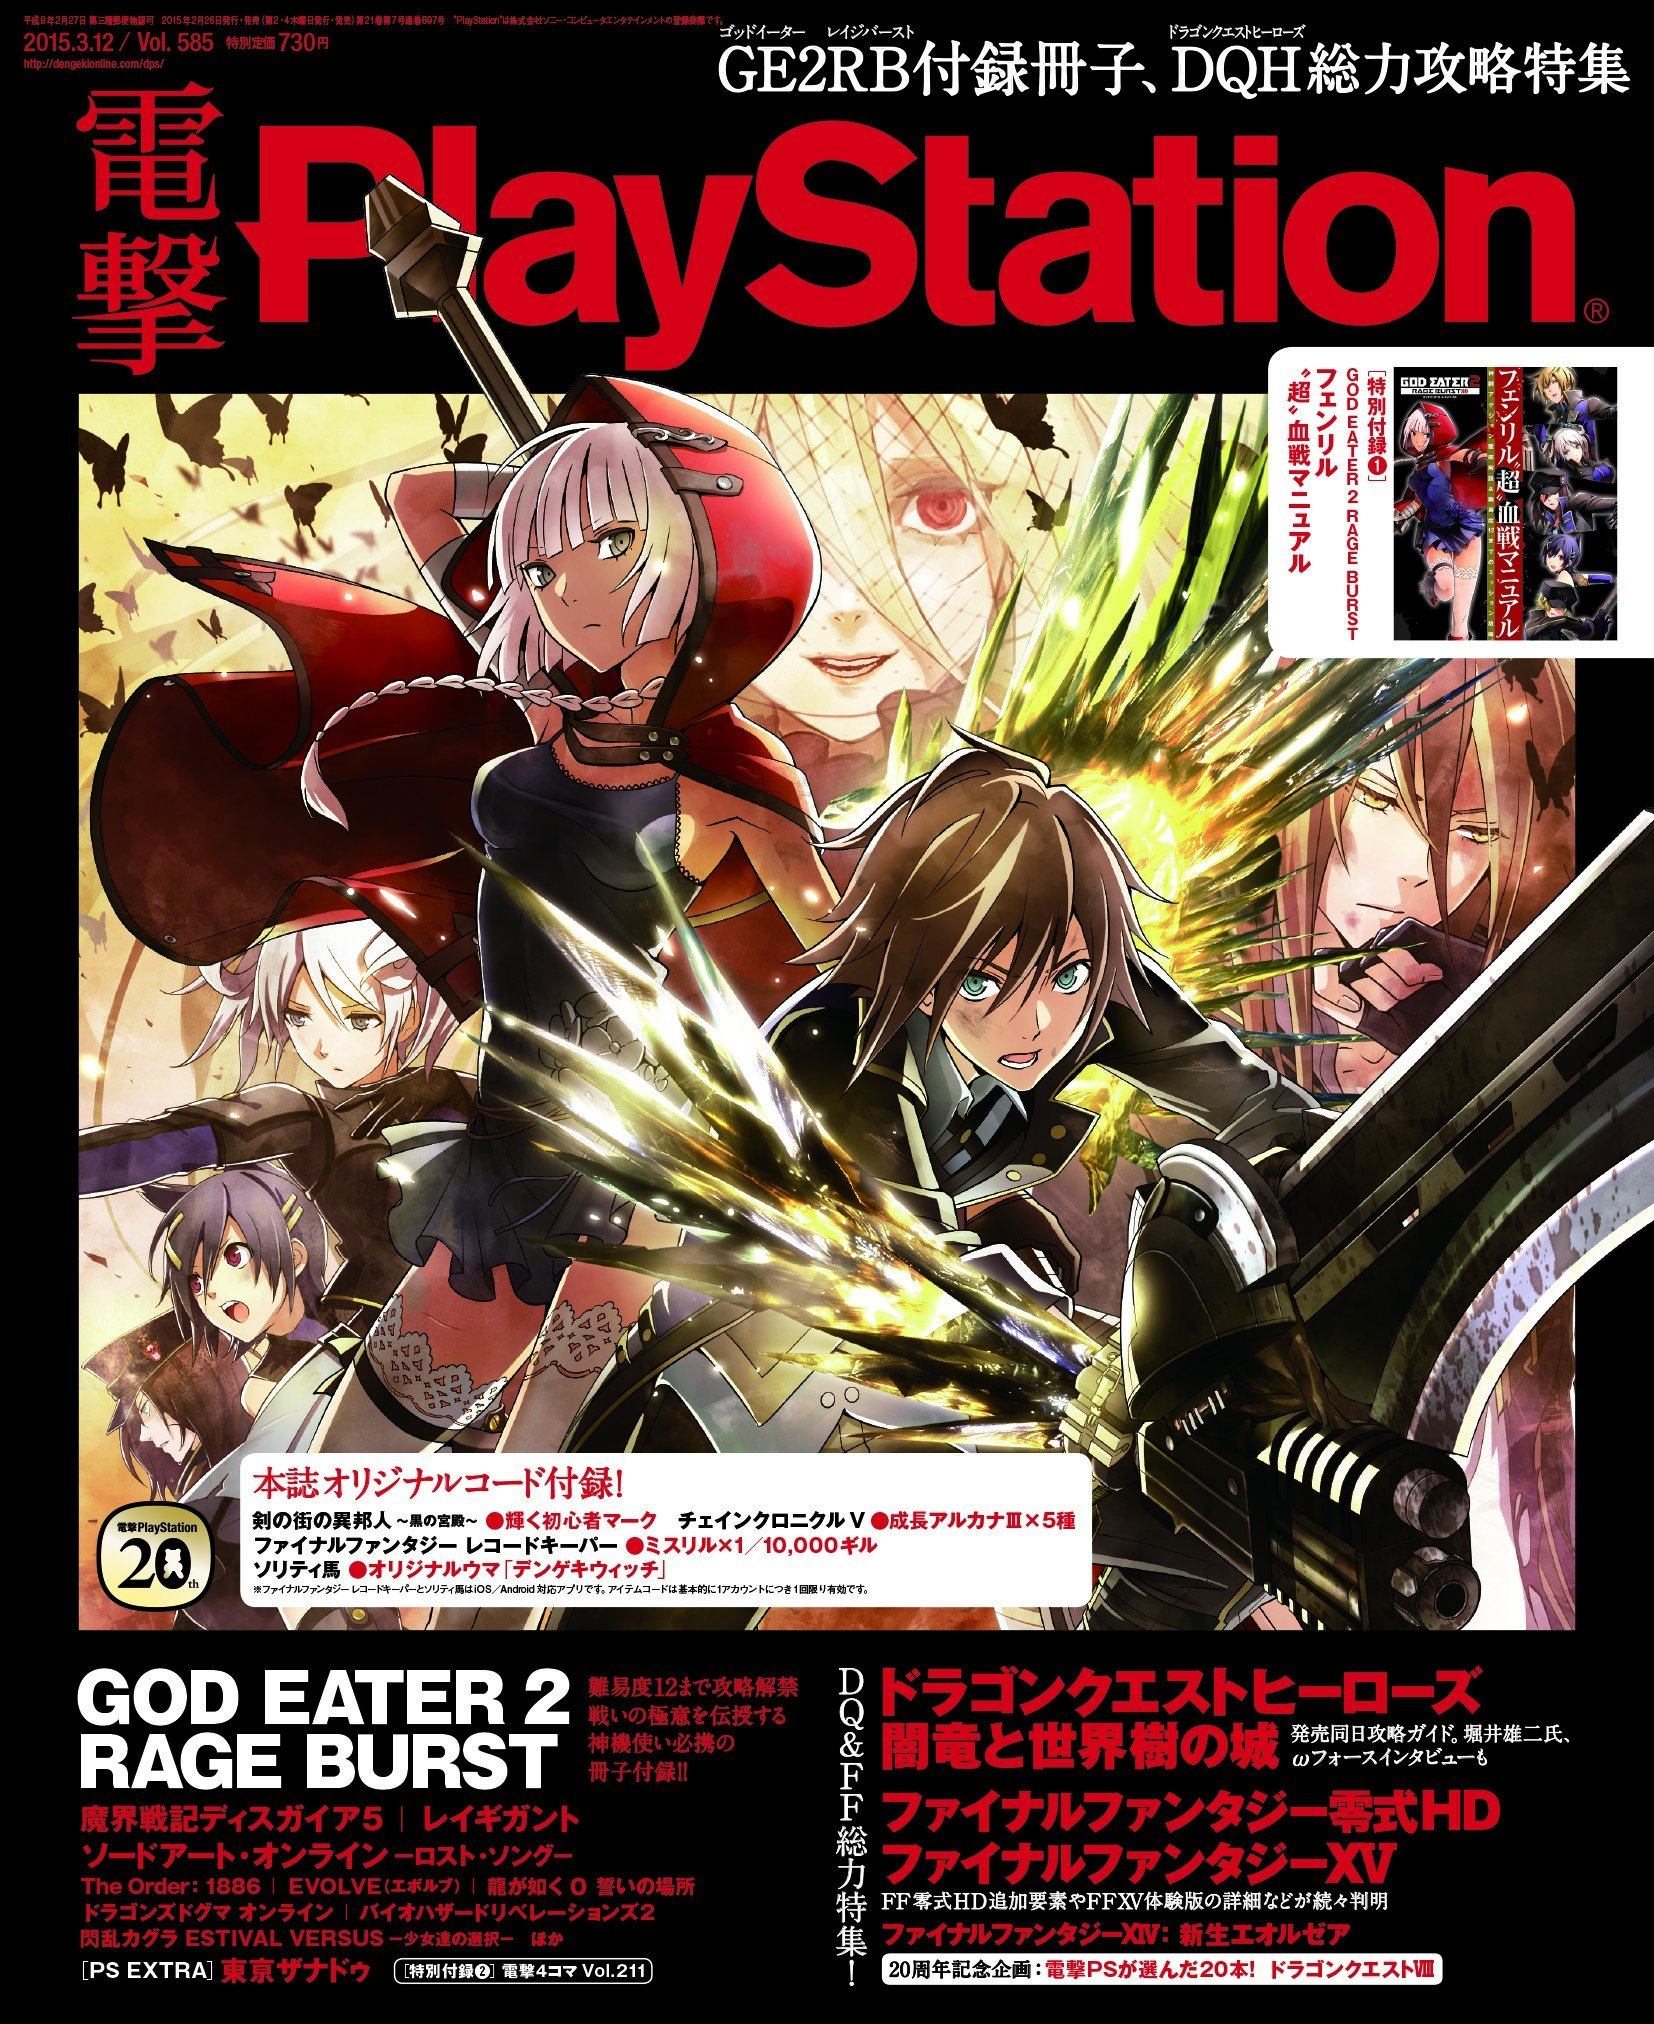 Dengeki PlayStation 585 (March 12, 2015)